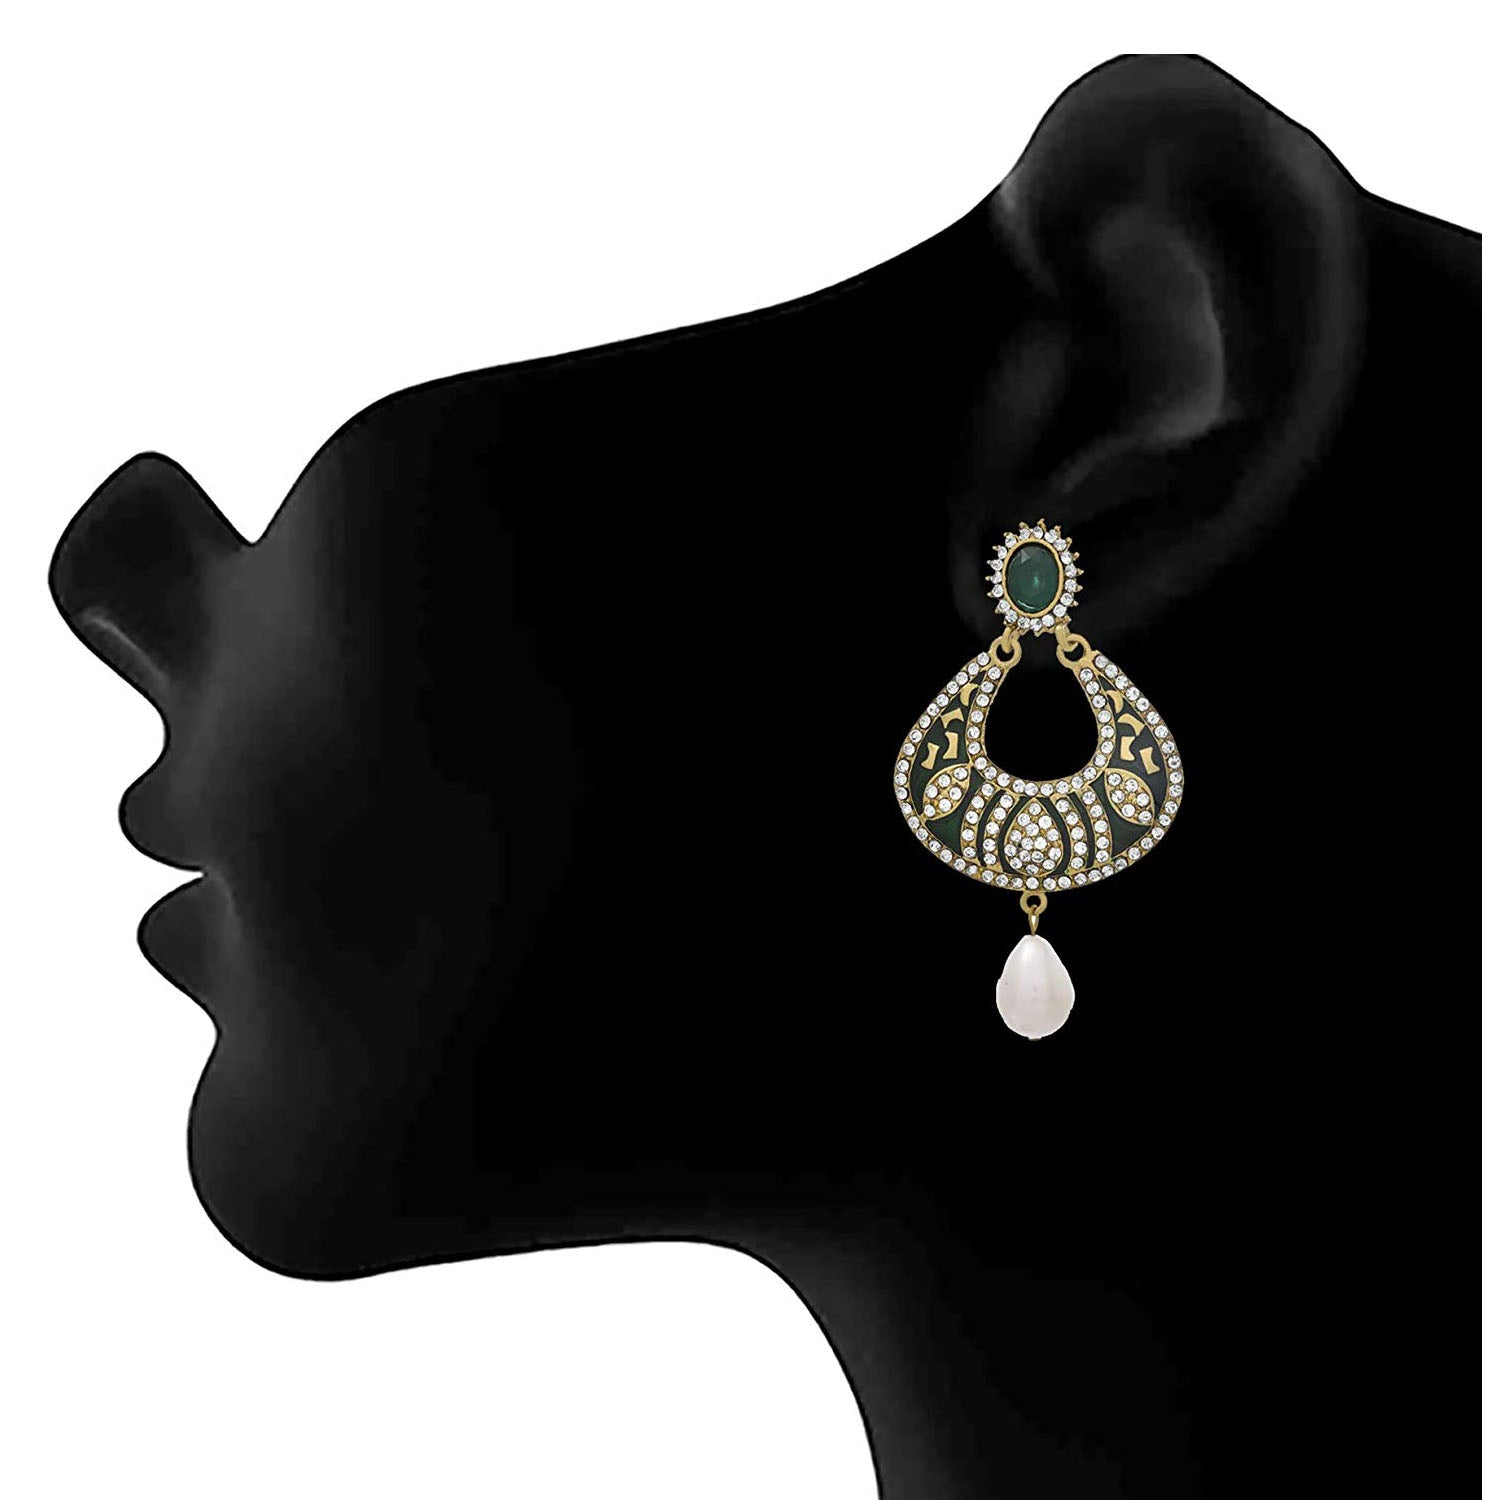 JFL - Traditional Ethnic One Gram Gold Plated Green Meenakari Diamond Designer Earring for Women & Girls.